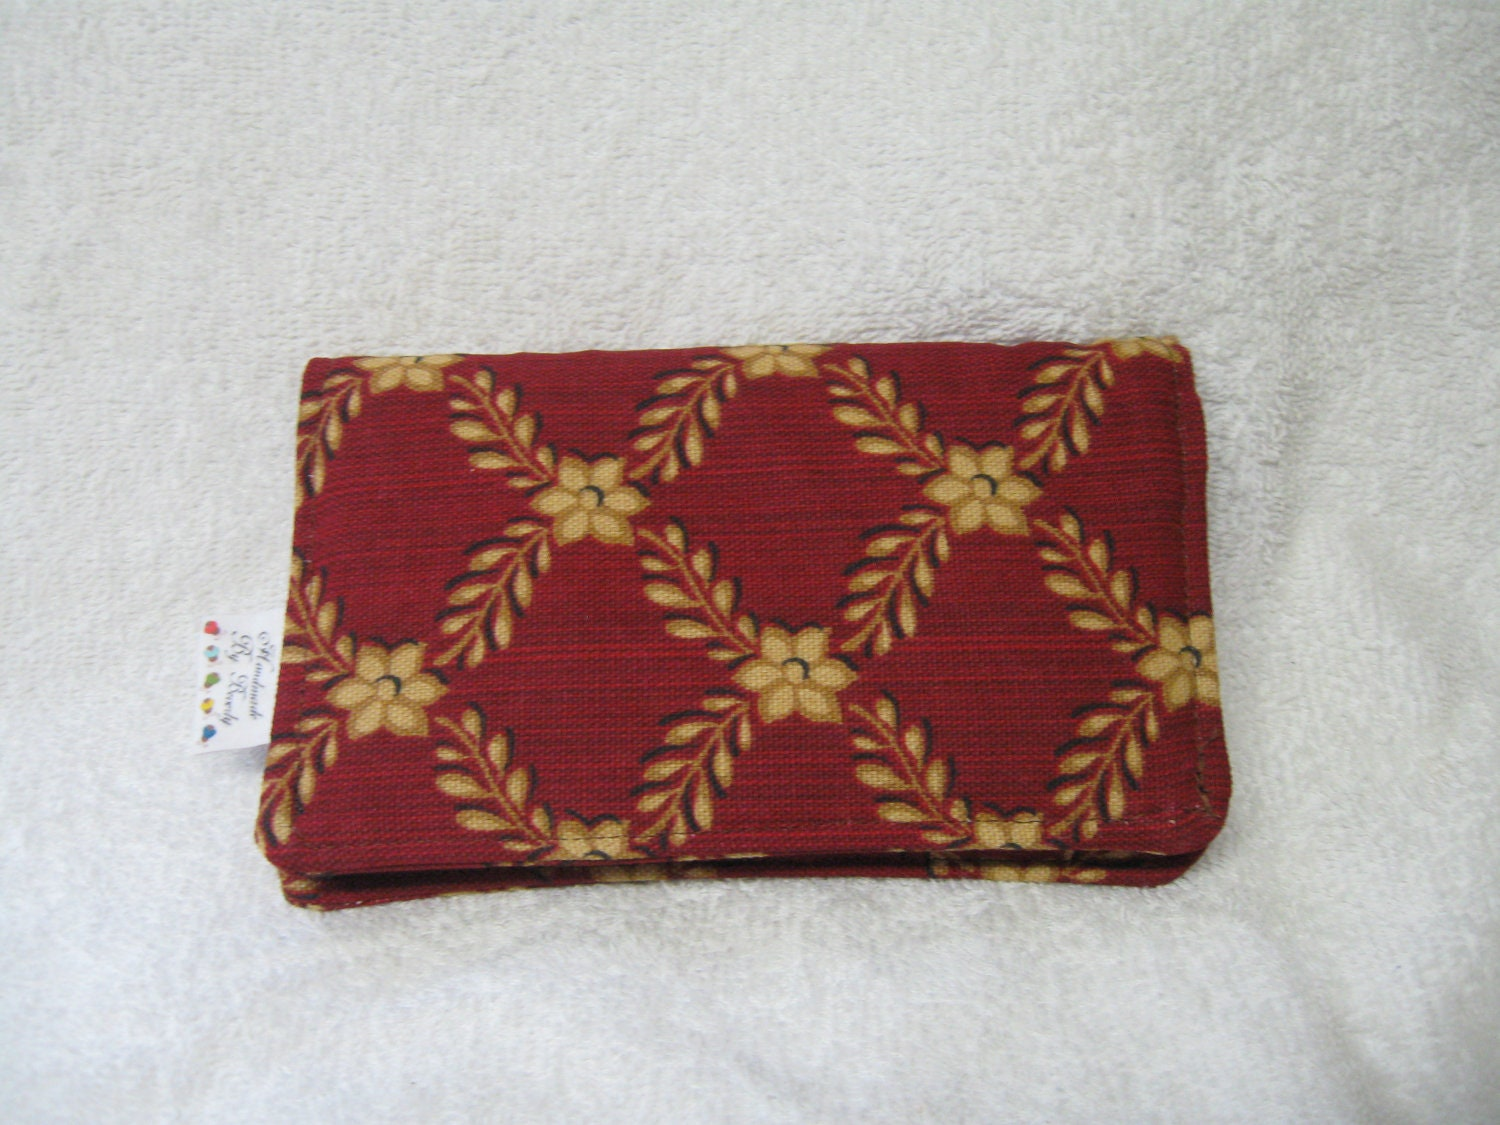 Checkbook Cover Burnt Orange and Gold Print Fabric Checkbook Cover